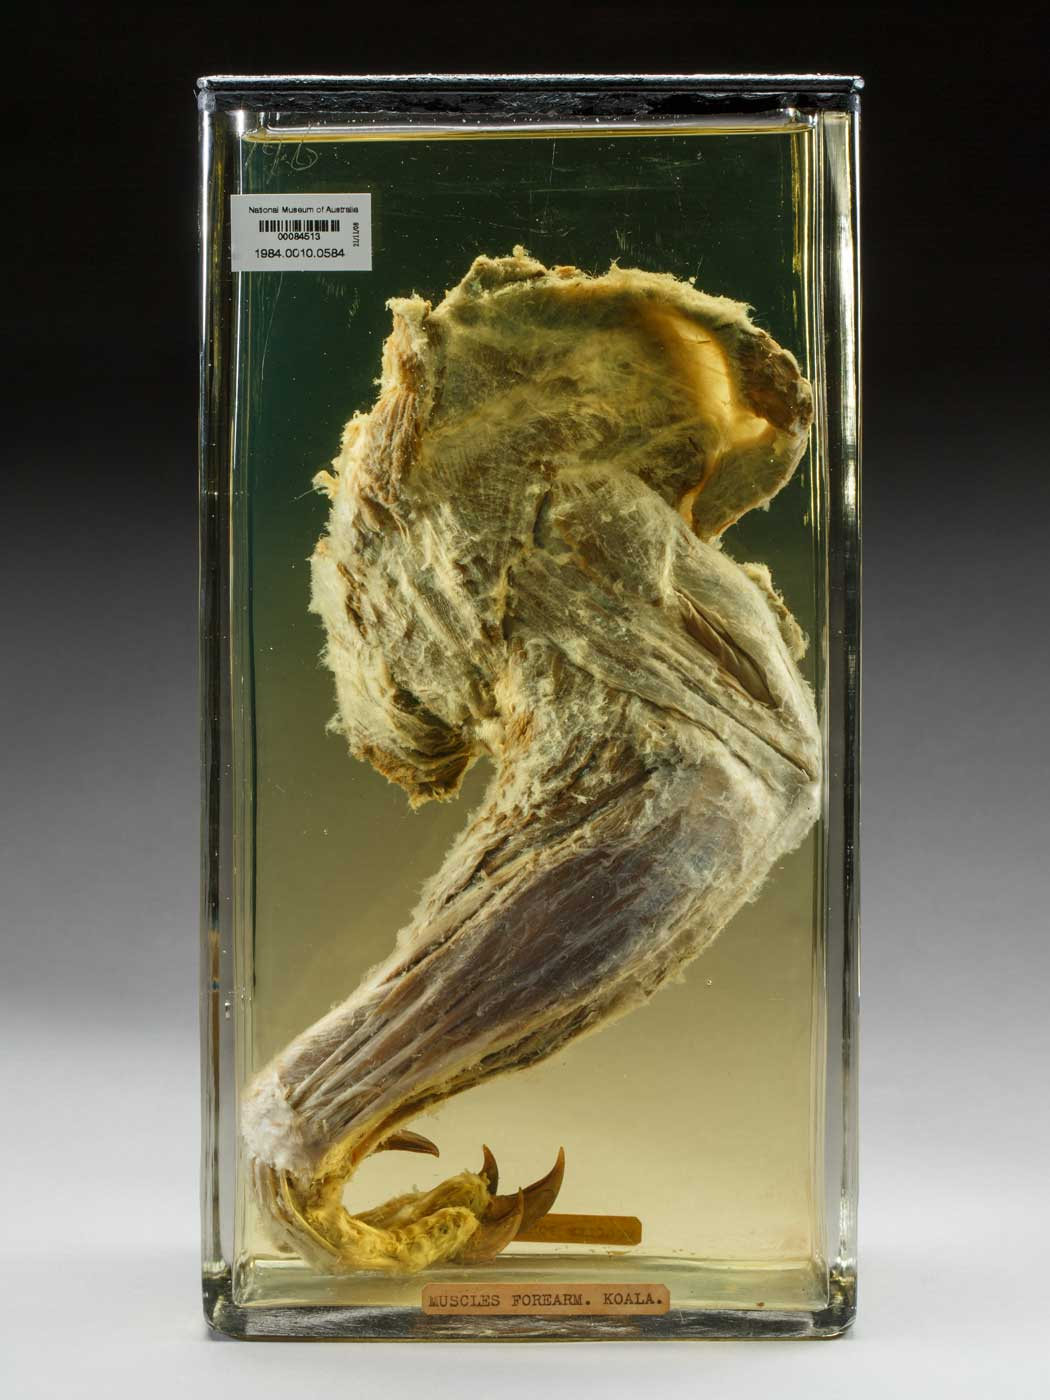 Wet specimen of an animal body part. - click to view larger image